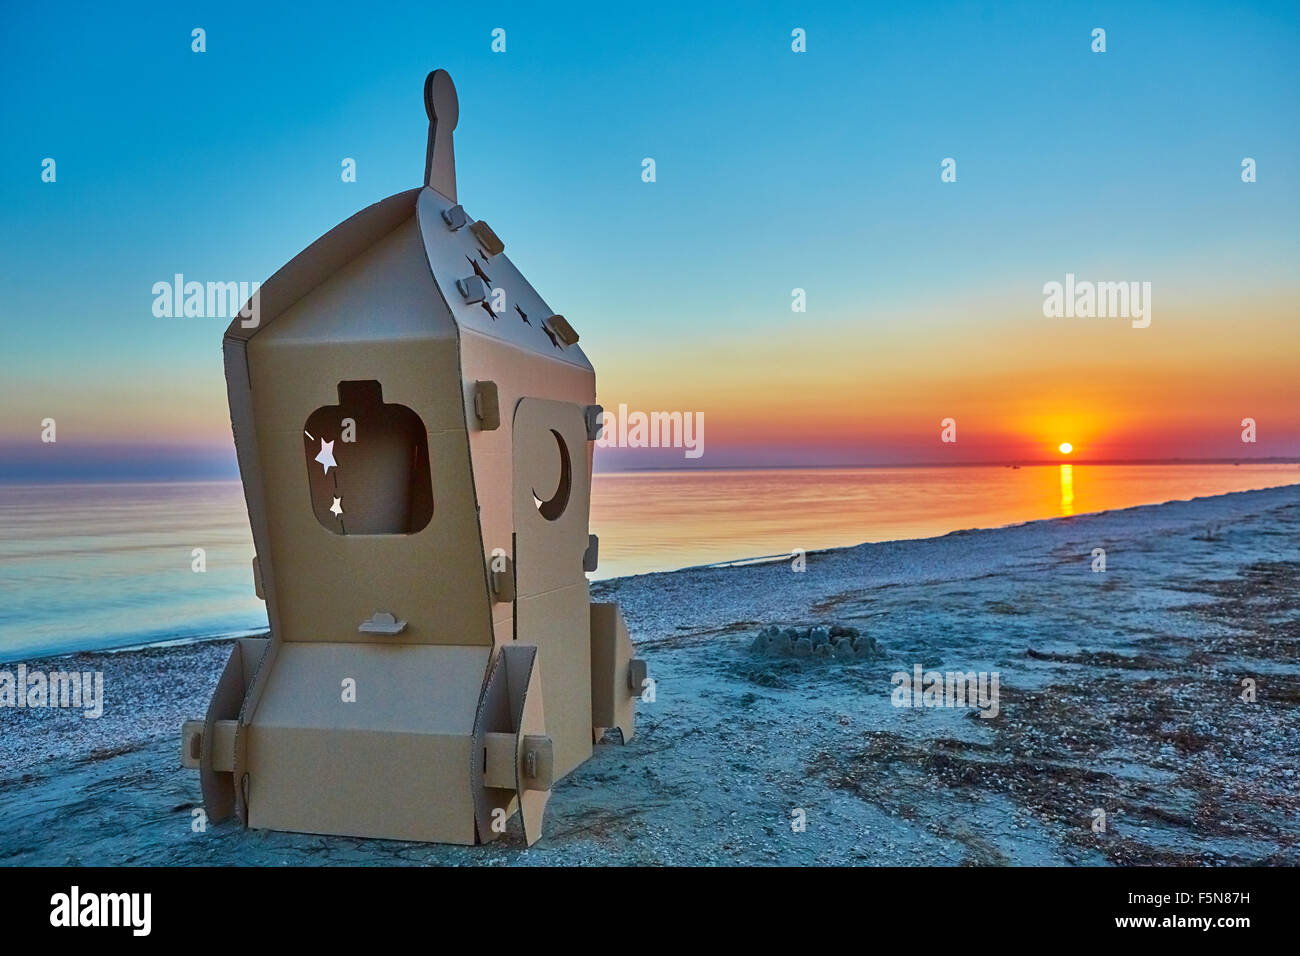 Ecoconcept cardboard toy spaceship at sea coast and sunset. eco concept stock